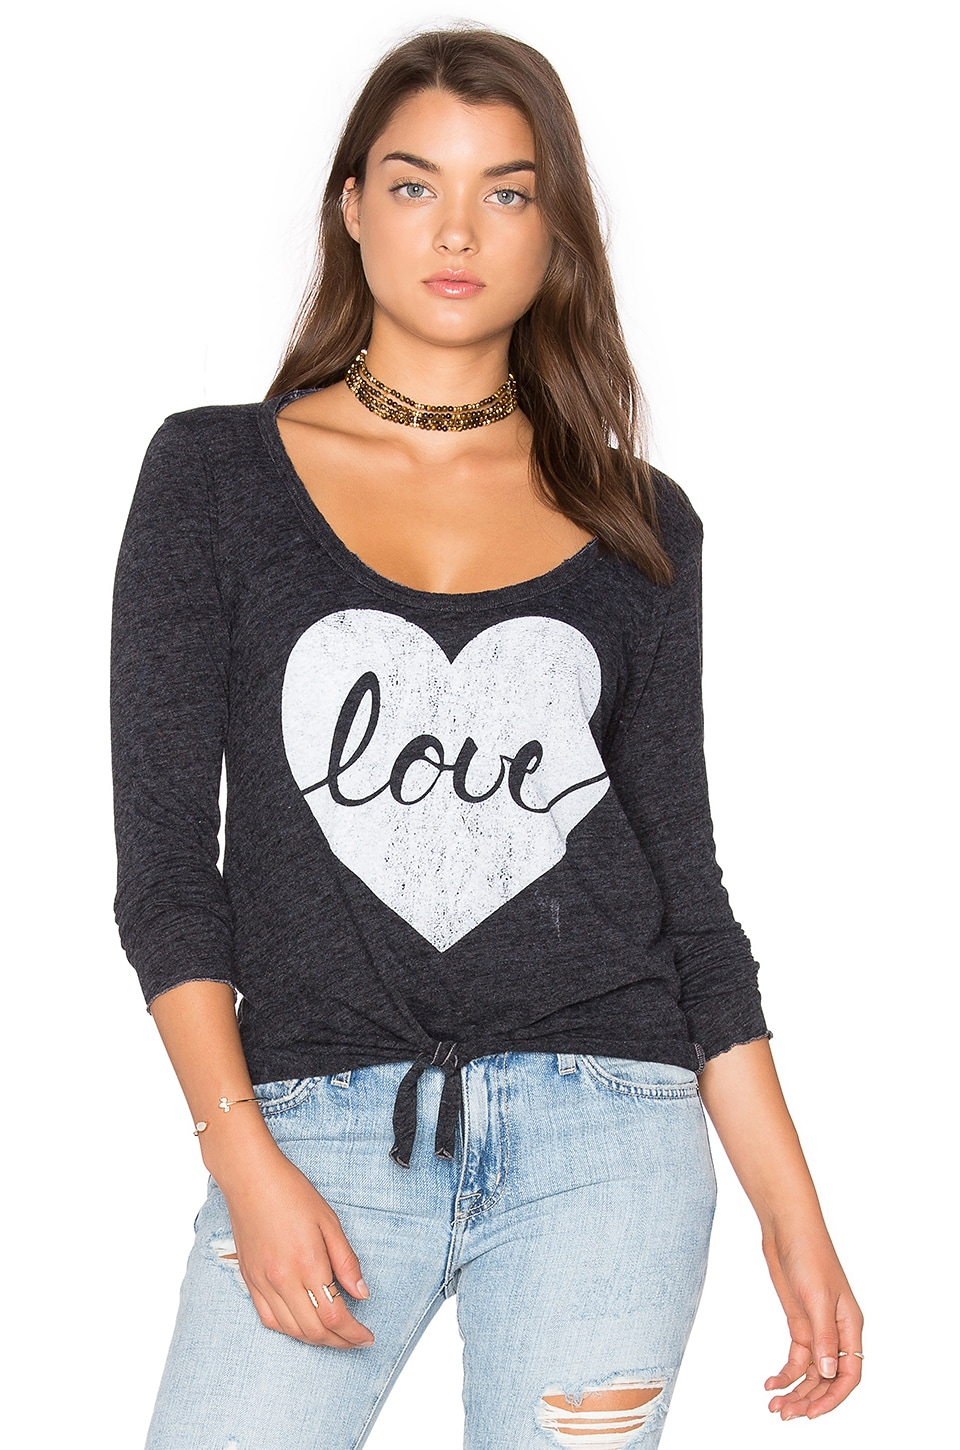 Heart Love Tee by Chaser